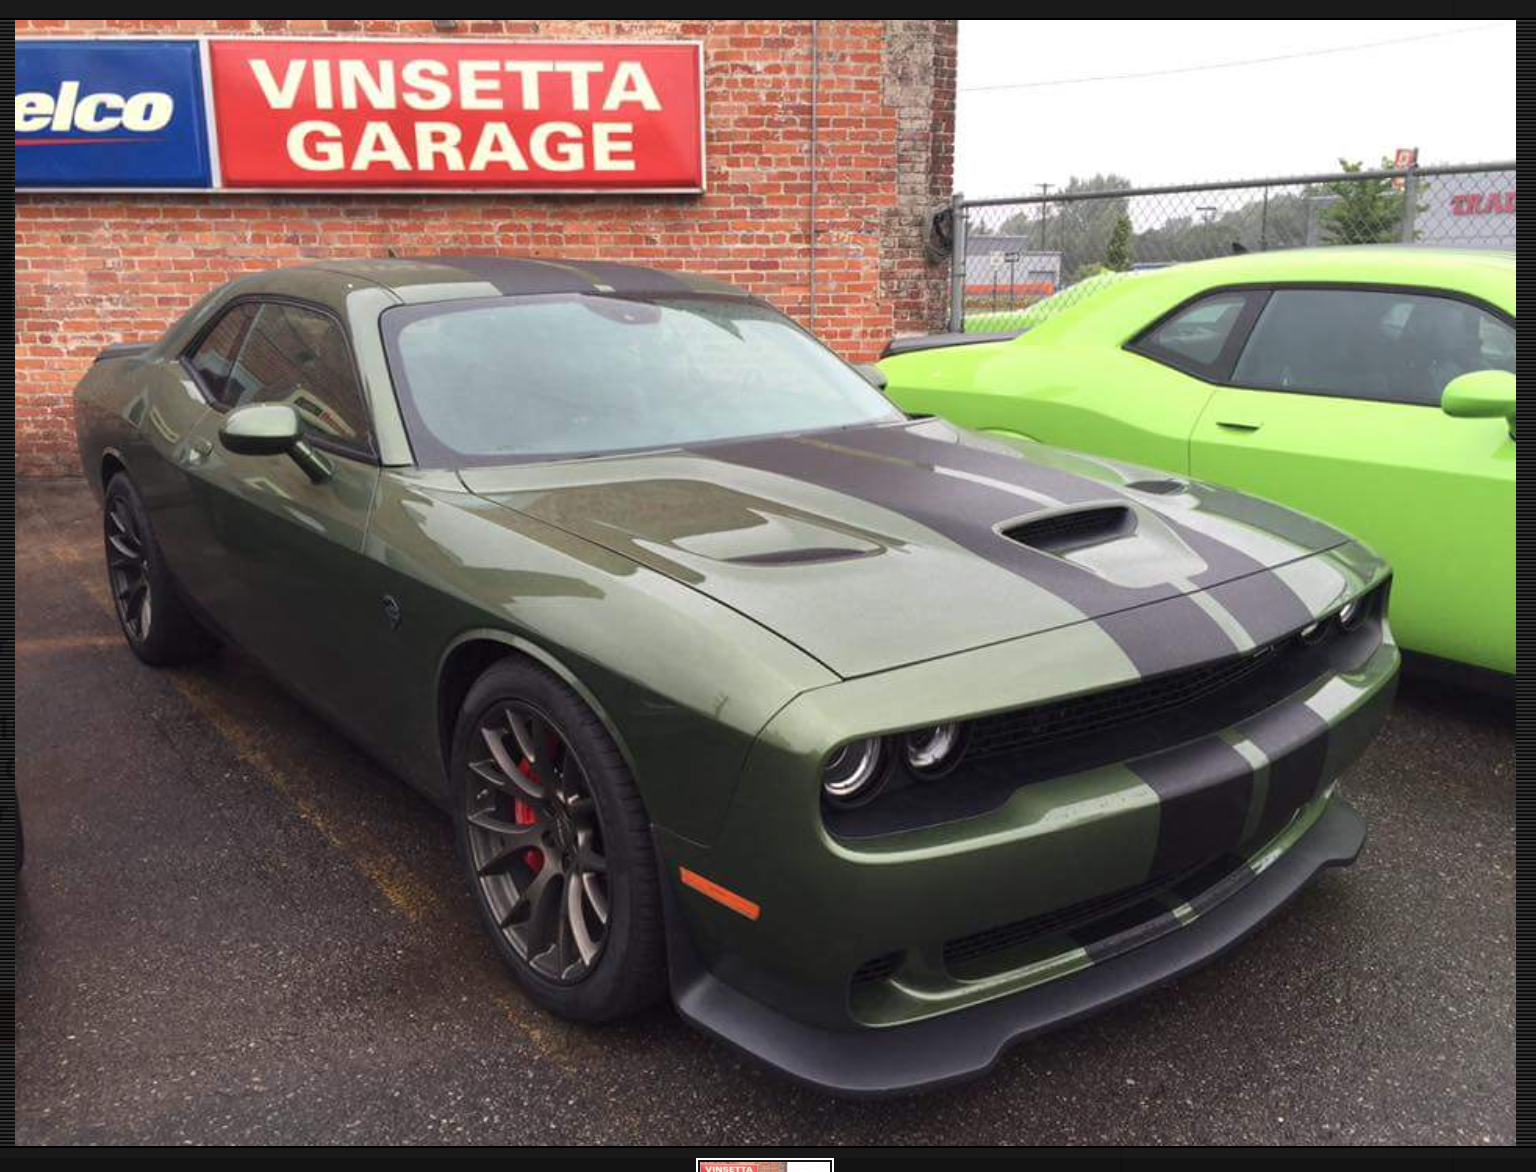 Green car paint colors - Hellcat Challenger With Wild New Green Paint Color At Vinsetta S Garage During 2016 Woodward Cruise